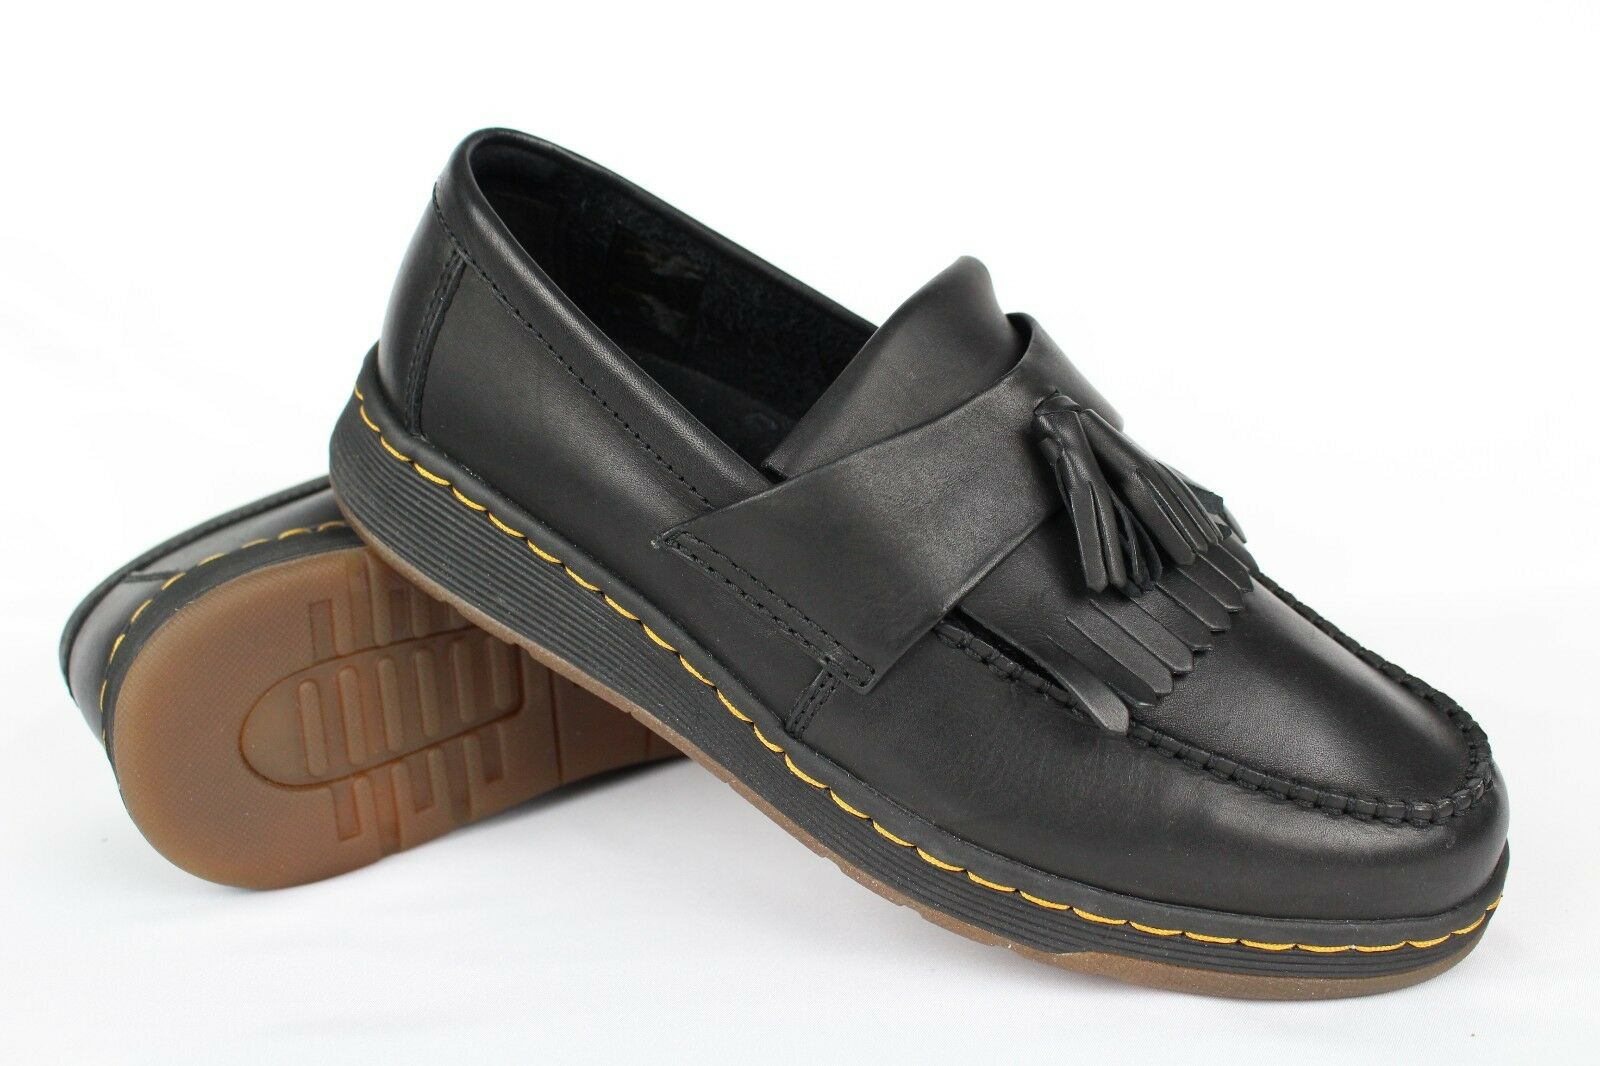 Dr Martens Women's Edison Tassel Loafers Slip On Soft Wair Size 10 Black Leather